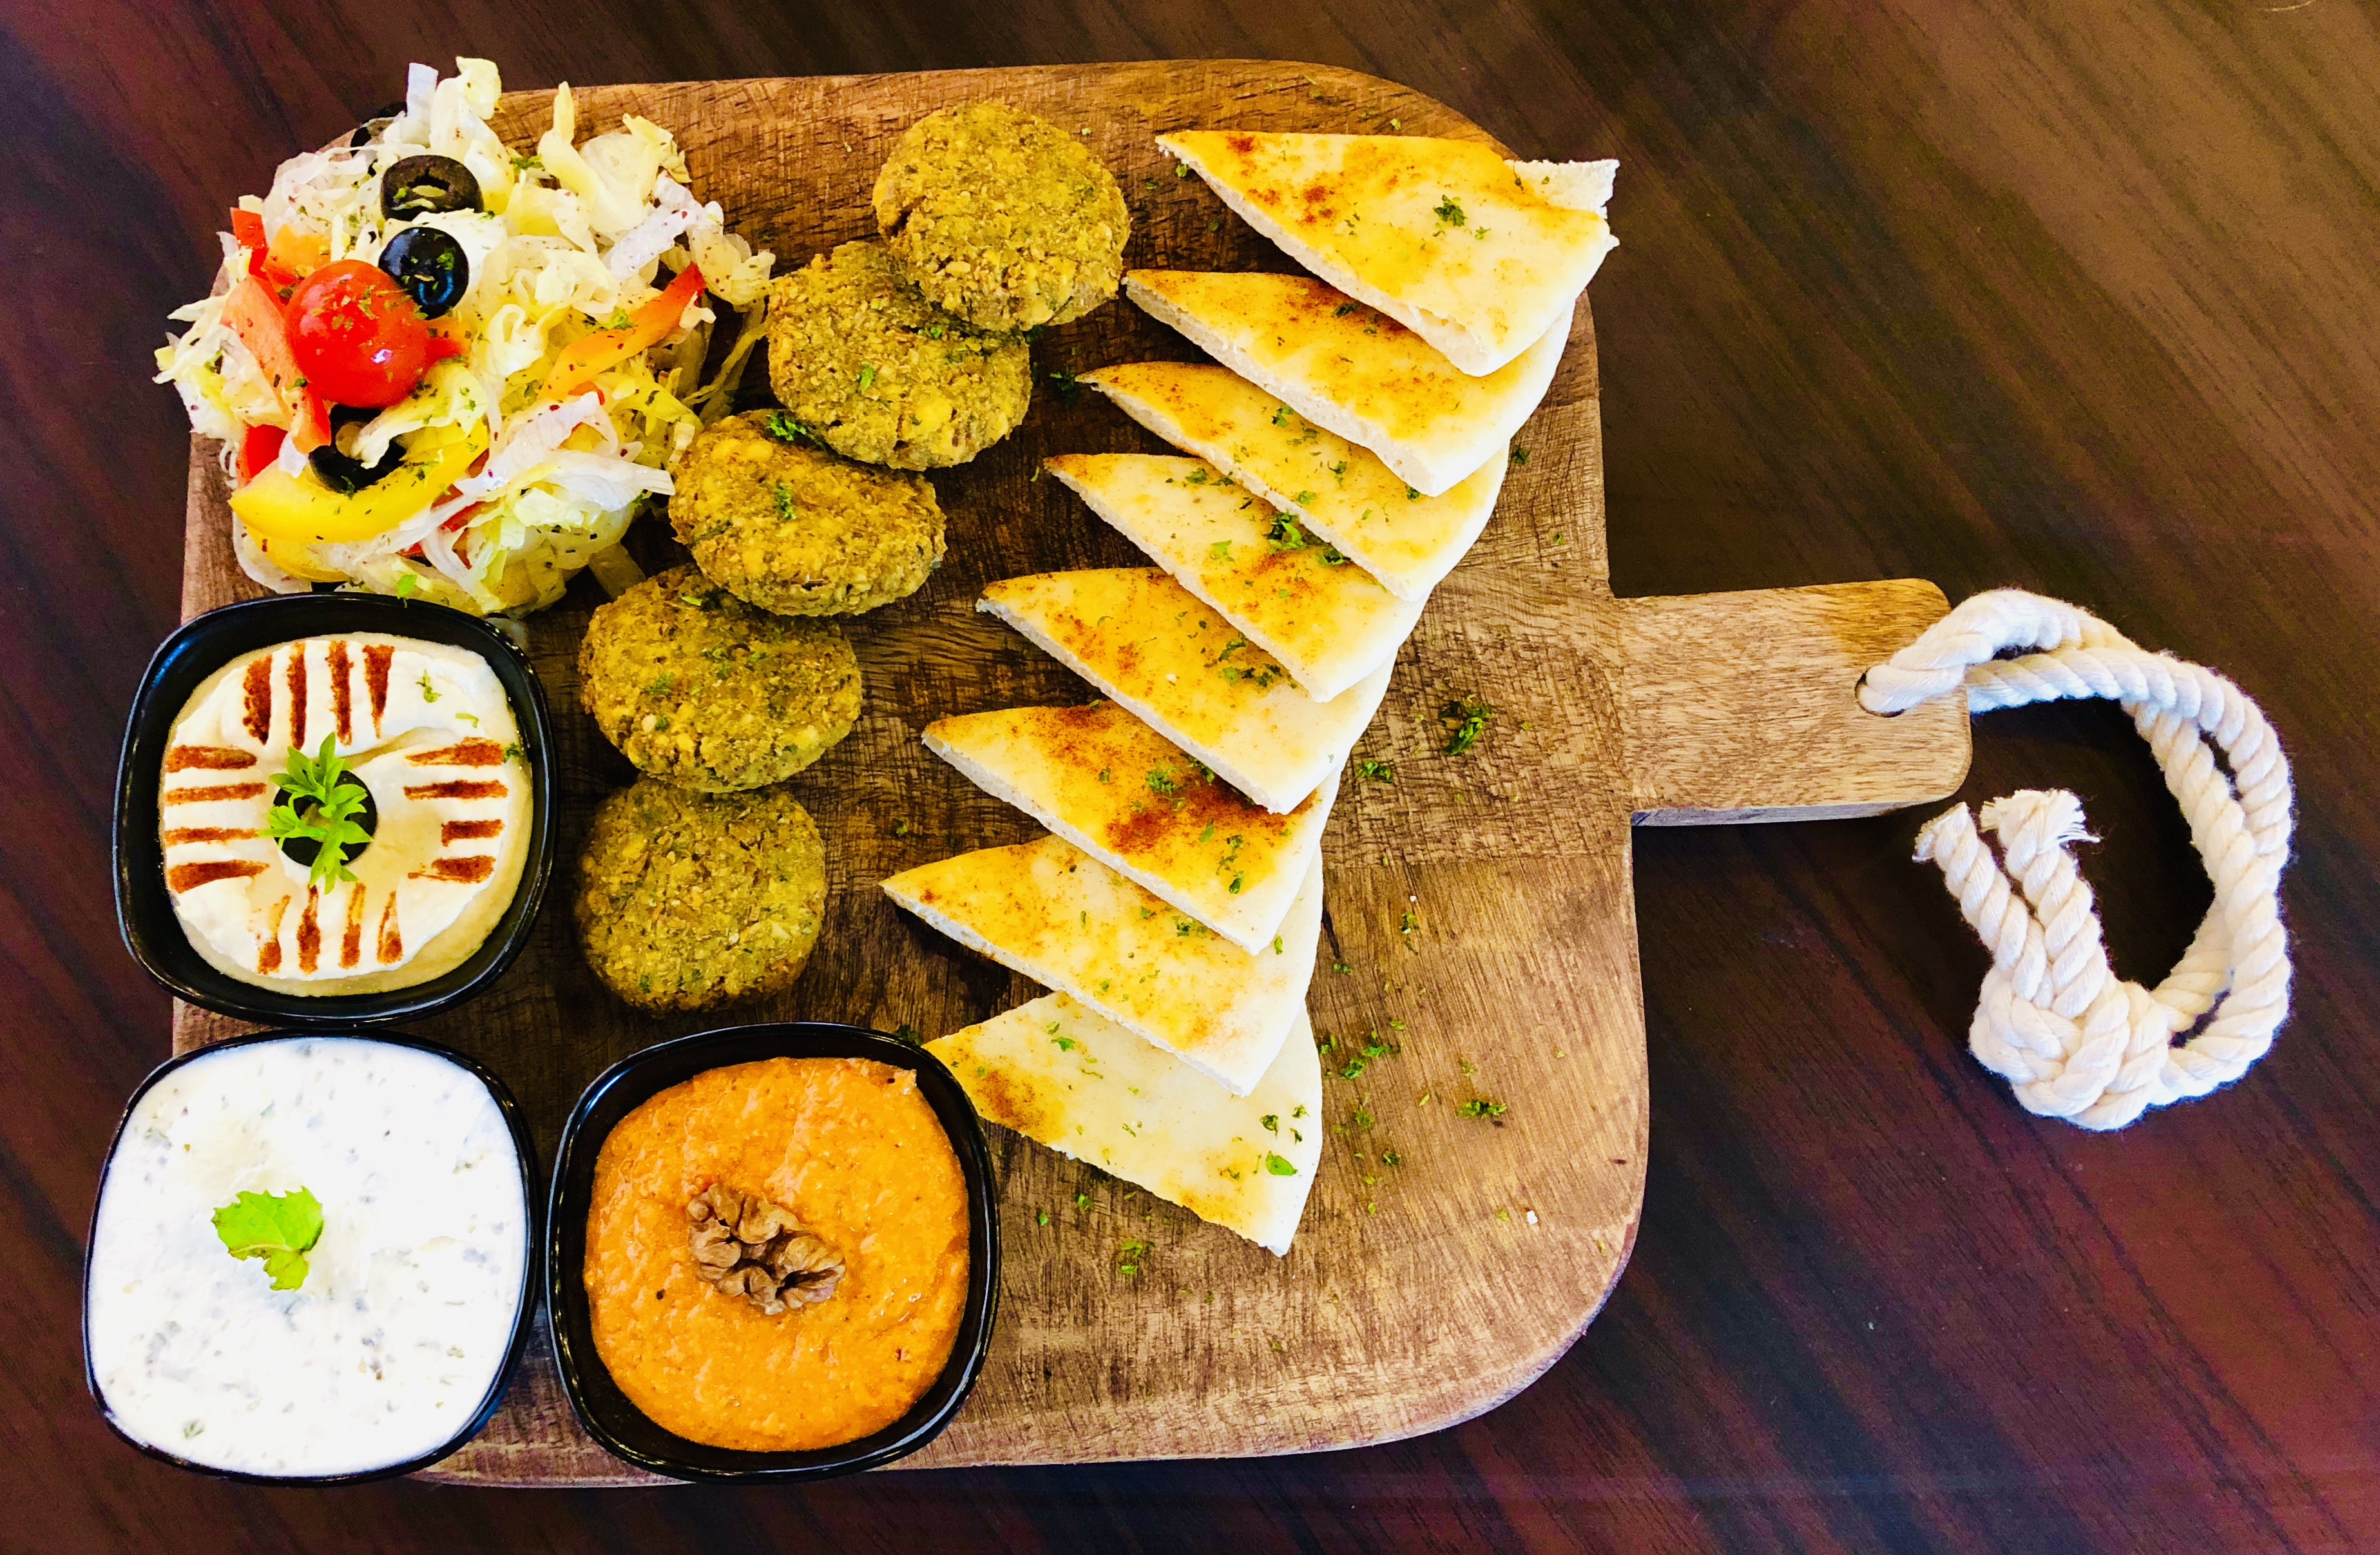 Food Review: #3BROS gives you flavourful food with its 'fun and fusion' theme